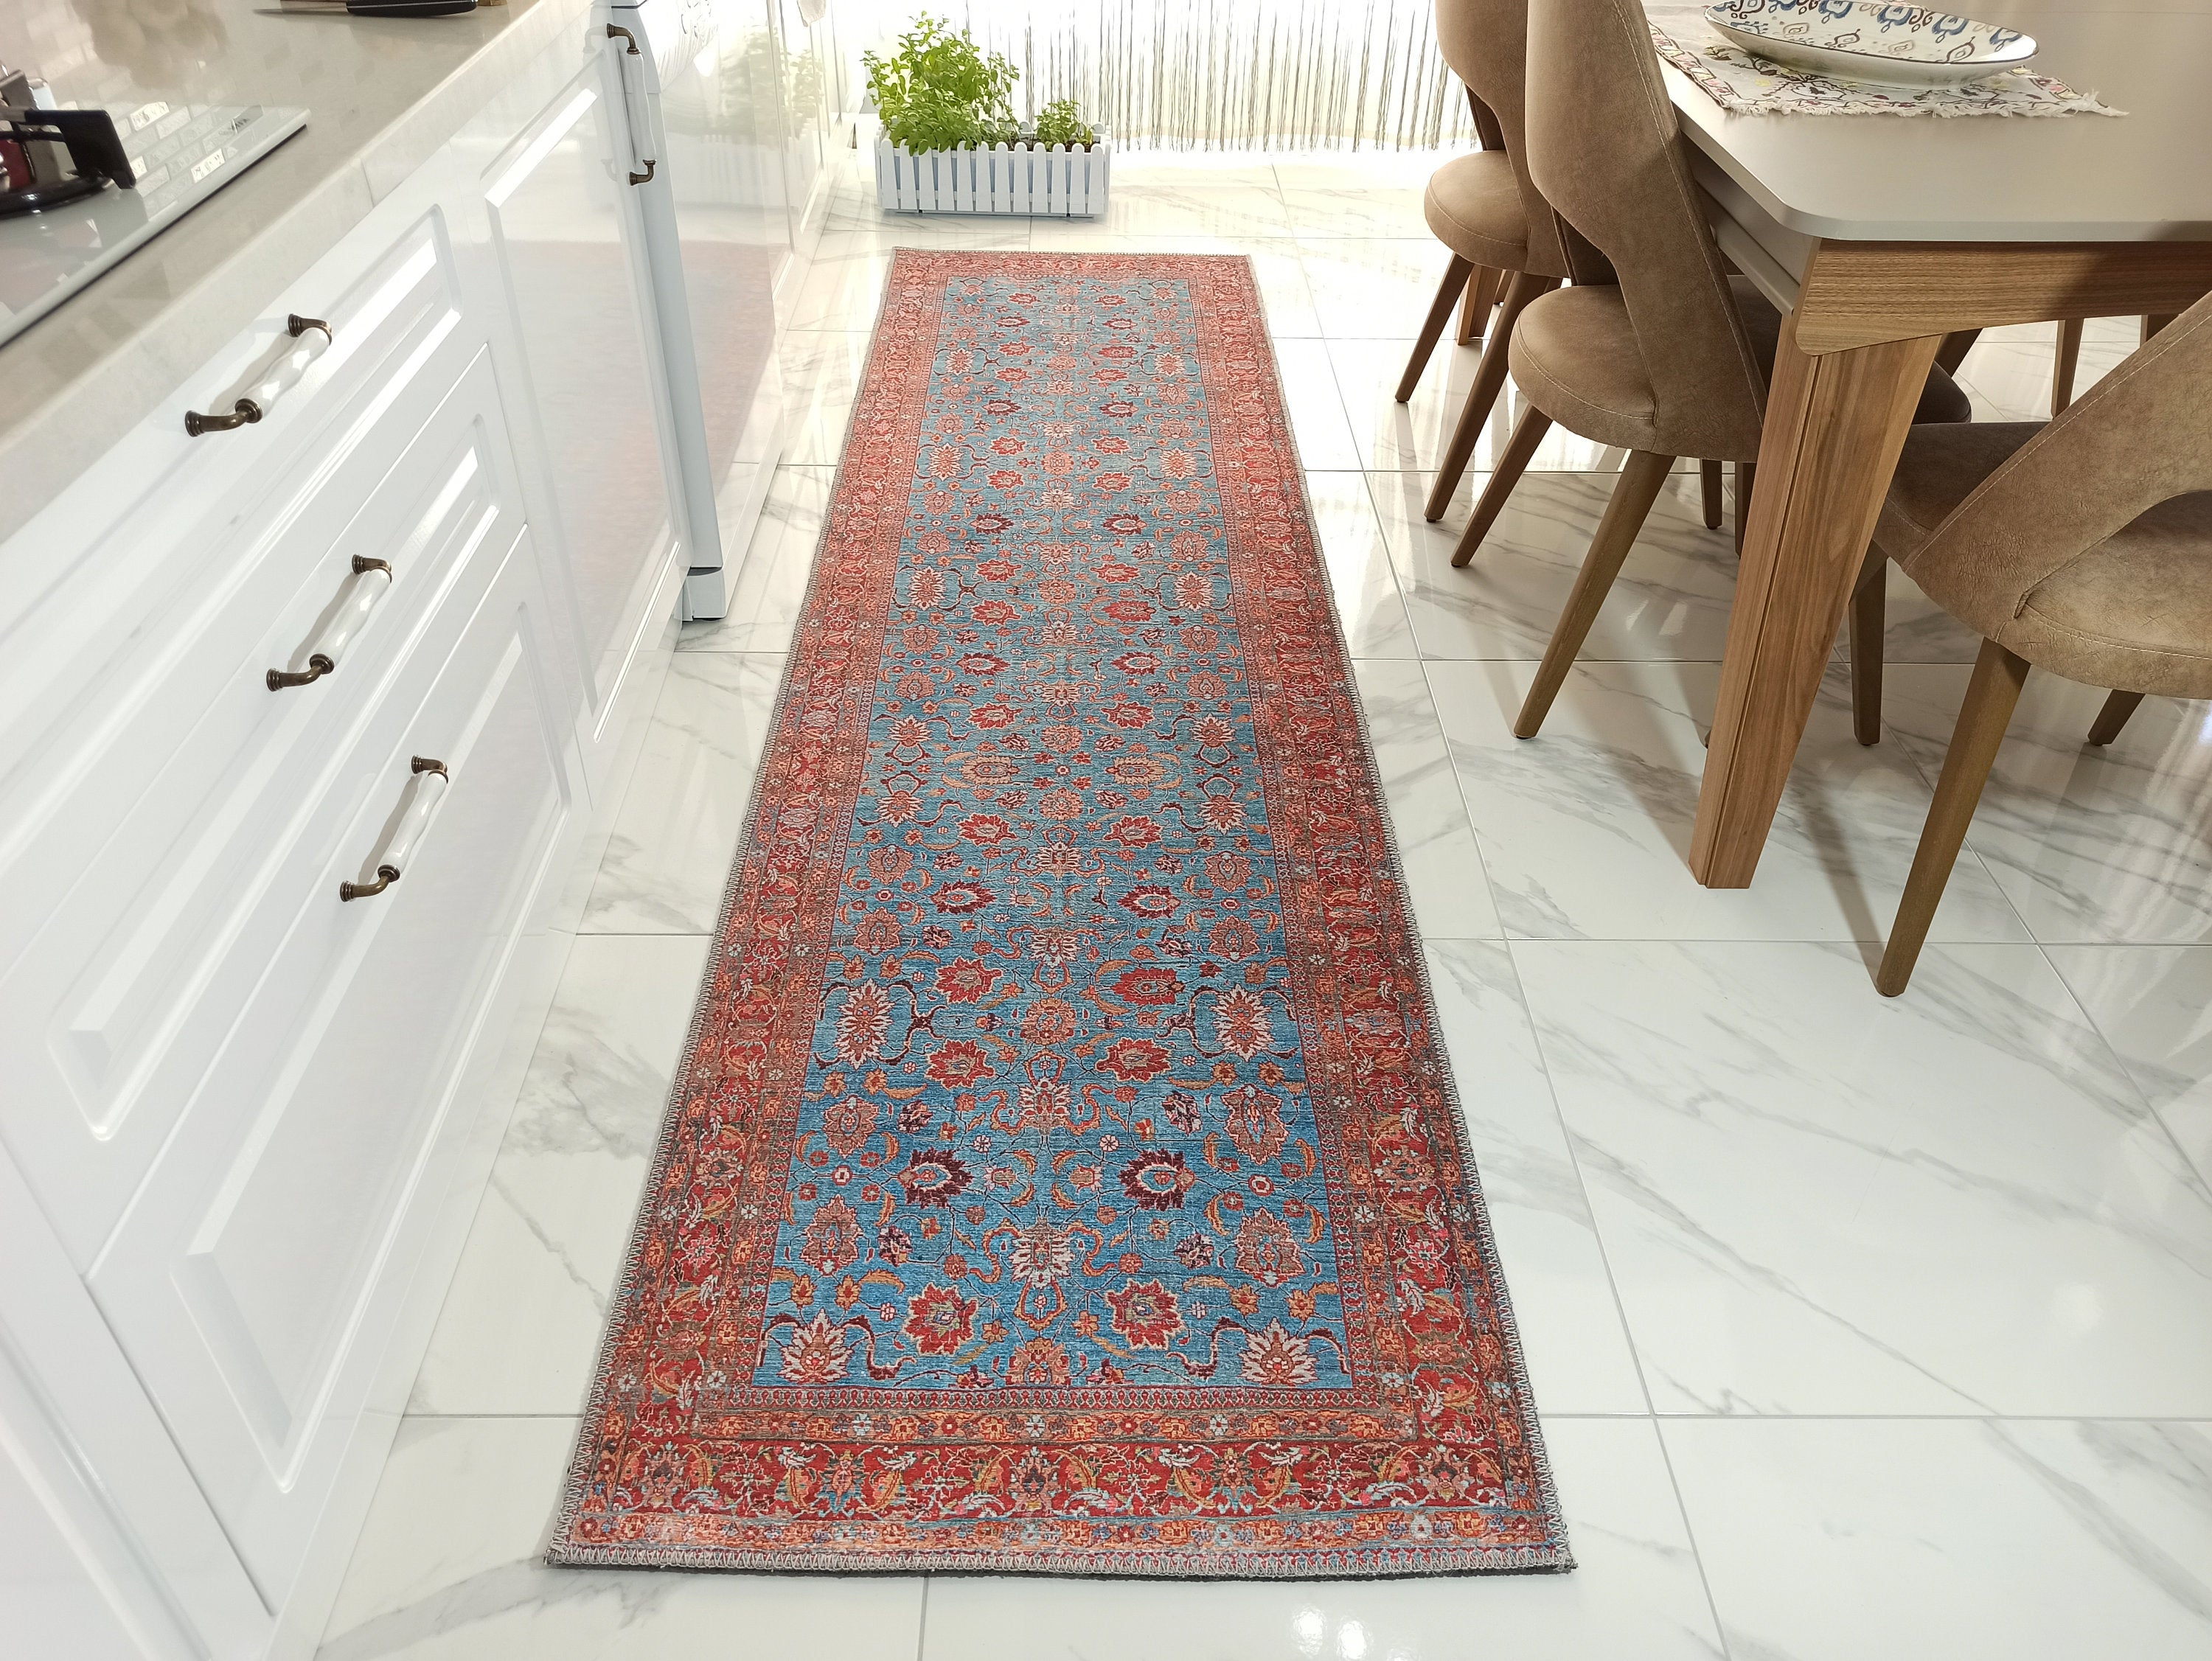 ZARA Runner | Persian Pattern Teal, Red Runners, Luxury Floral Oriental rug, Vintage Hallway Farmhouse Distressed Unique Short & Long Carpet